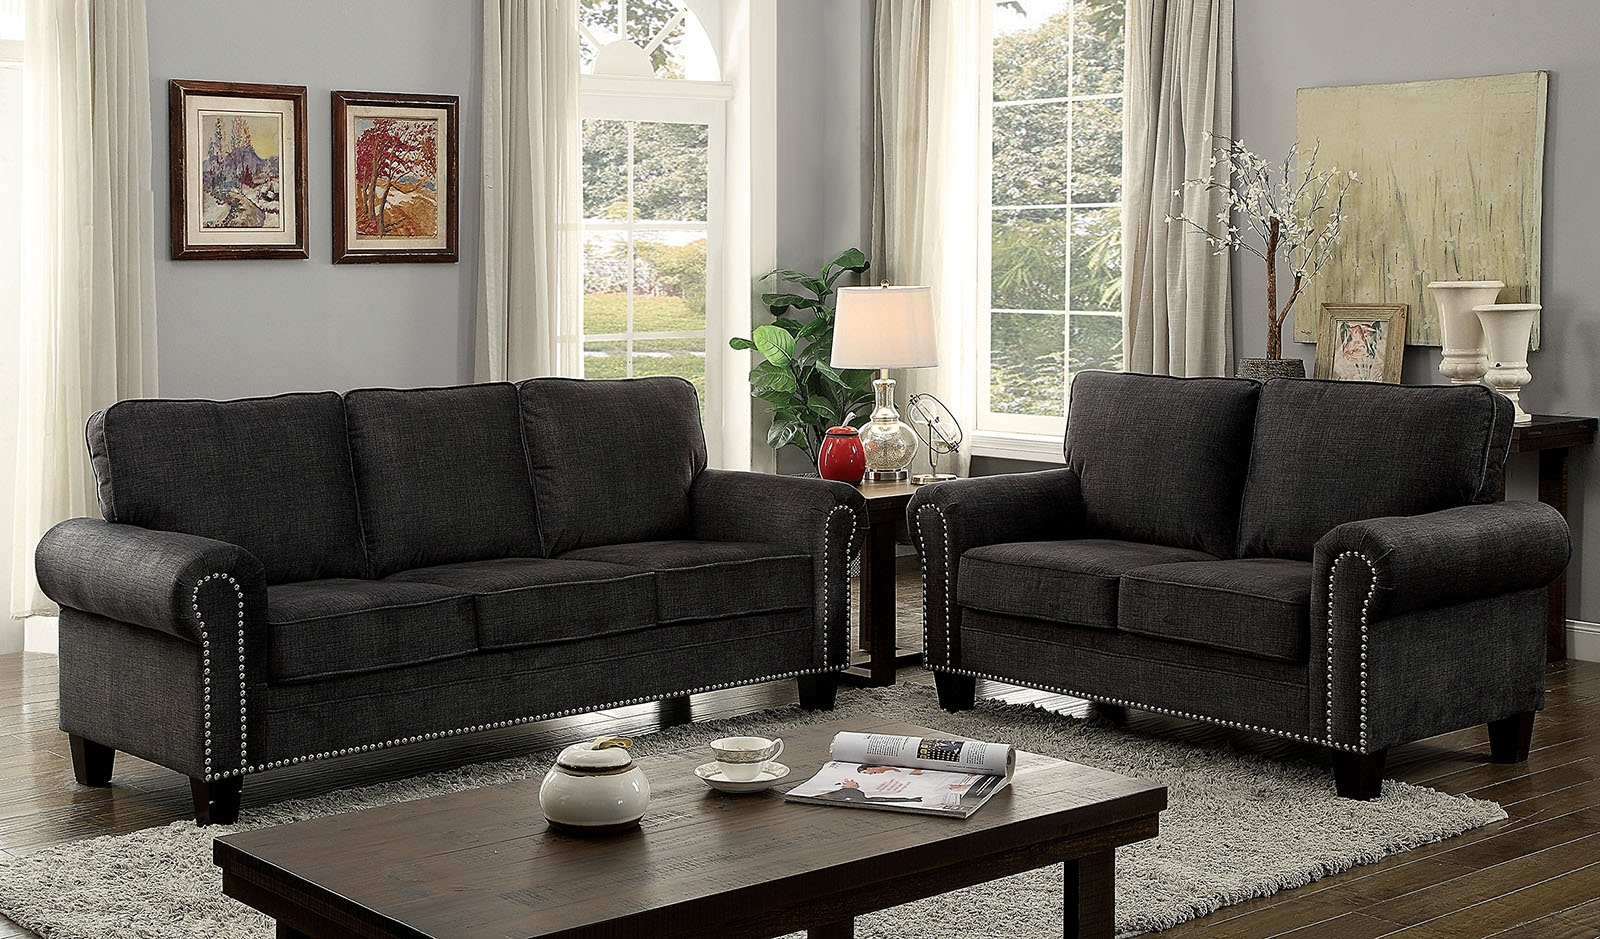 Most Recently Released Elwick Dark Gray Fabric Sofa Loveseat Set W/ Rolled Arms Intended For Fabric Sofas (View 15 of 20)